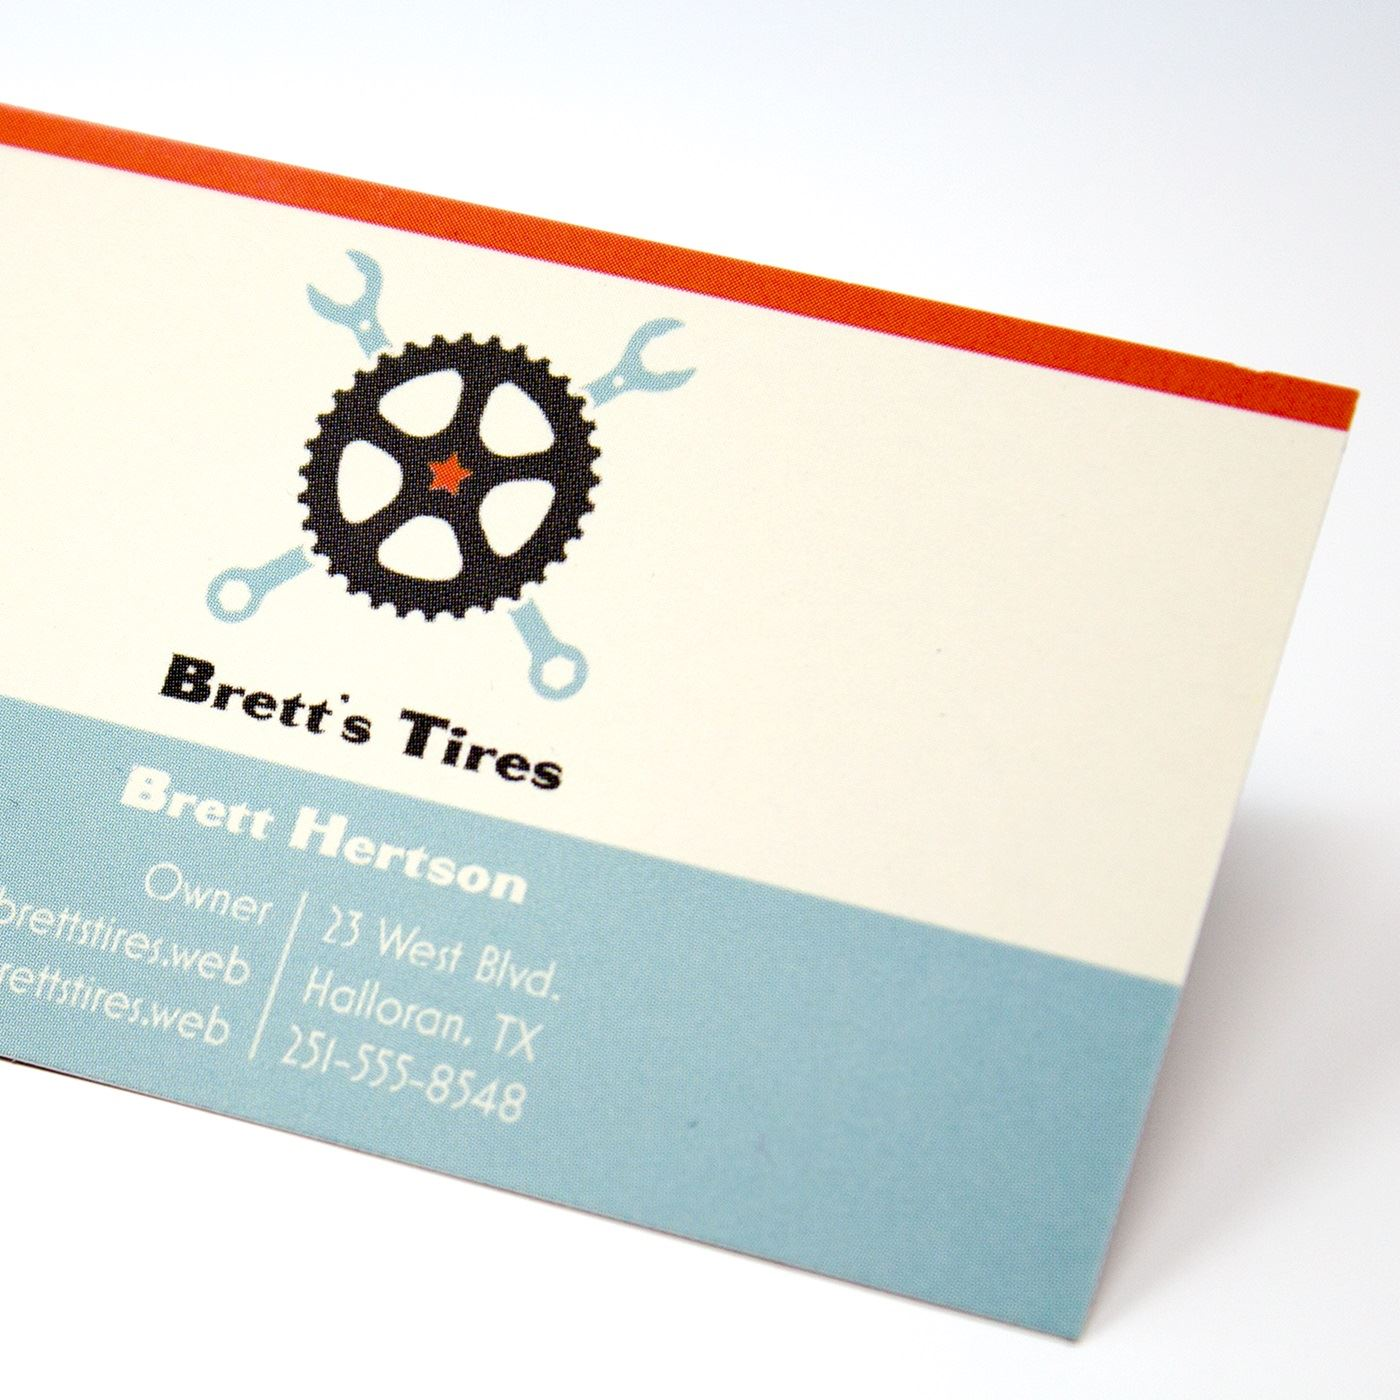 Soft Touch Business Cards, Soft Touch Coating | Vistaprint